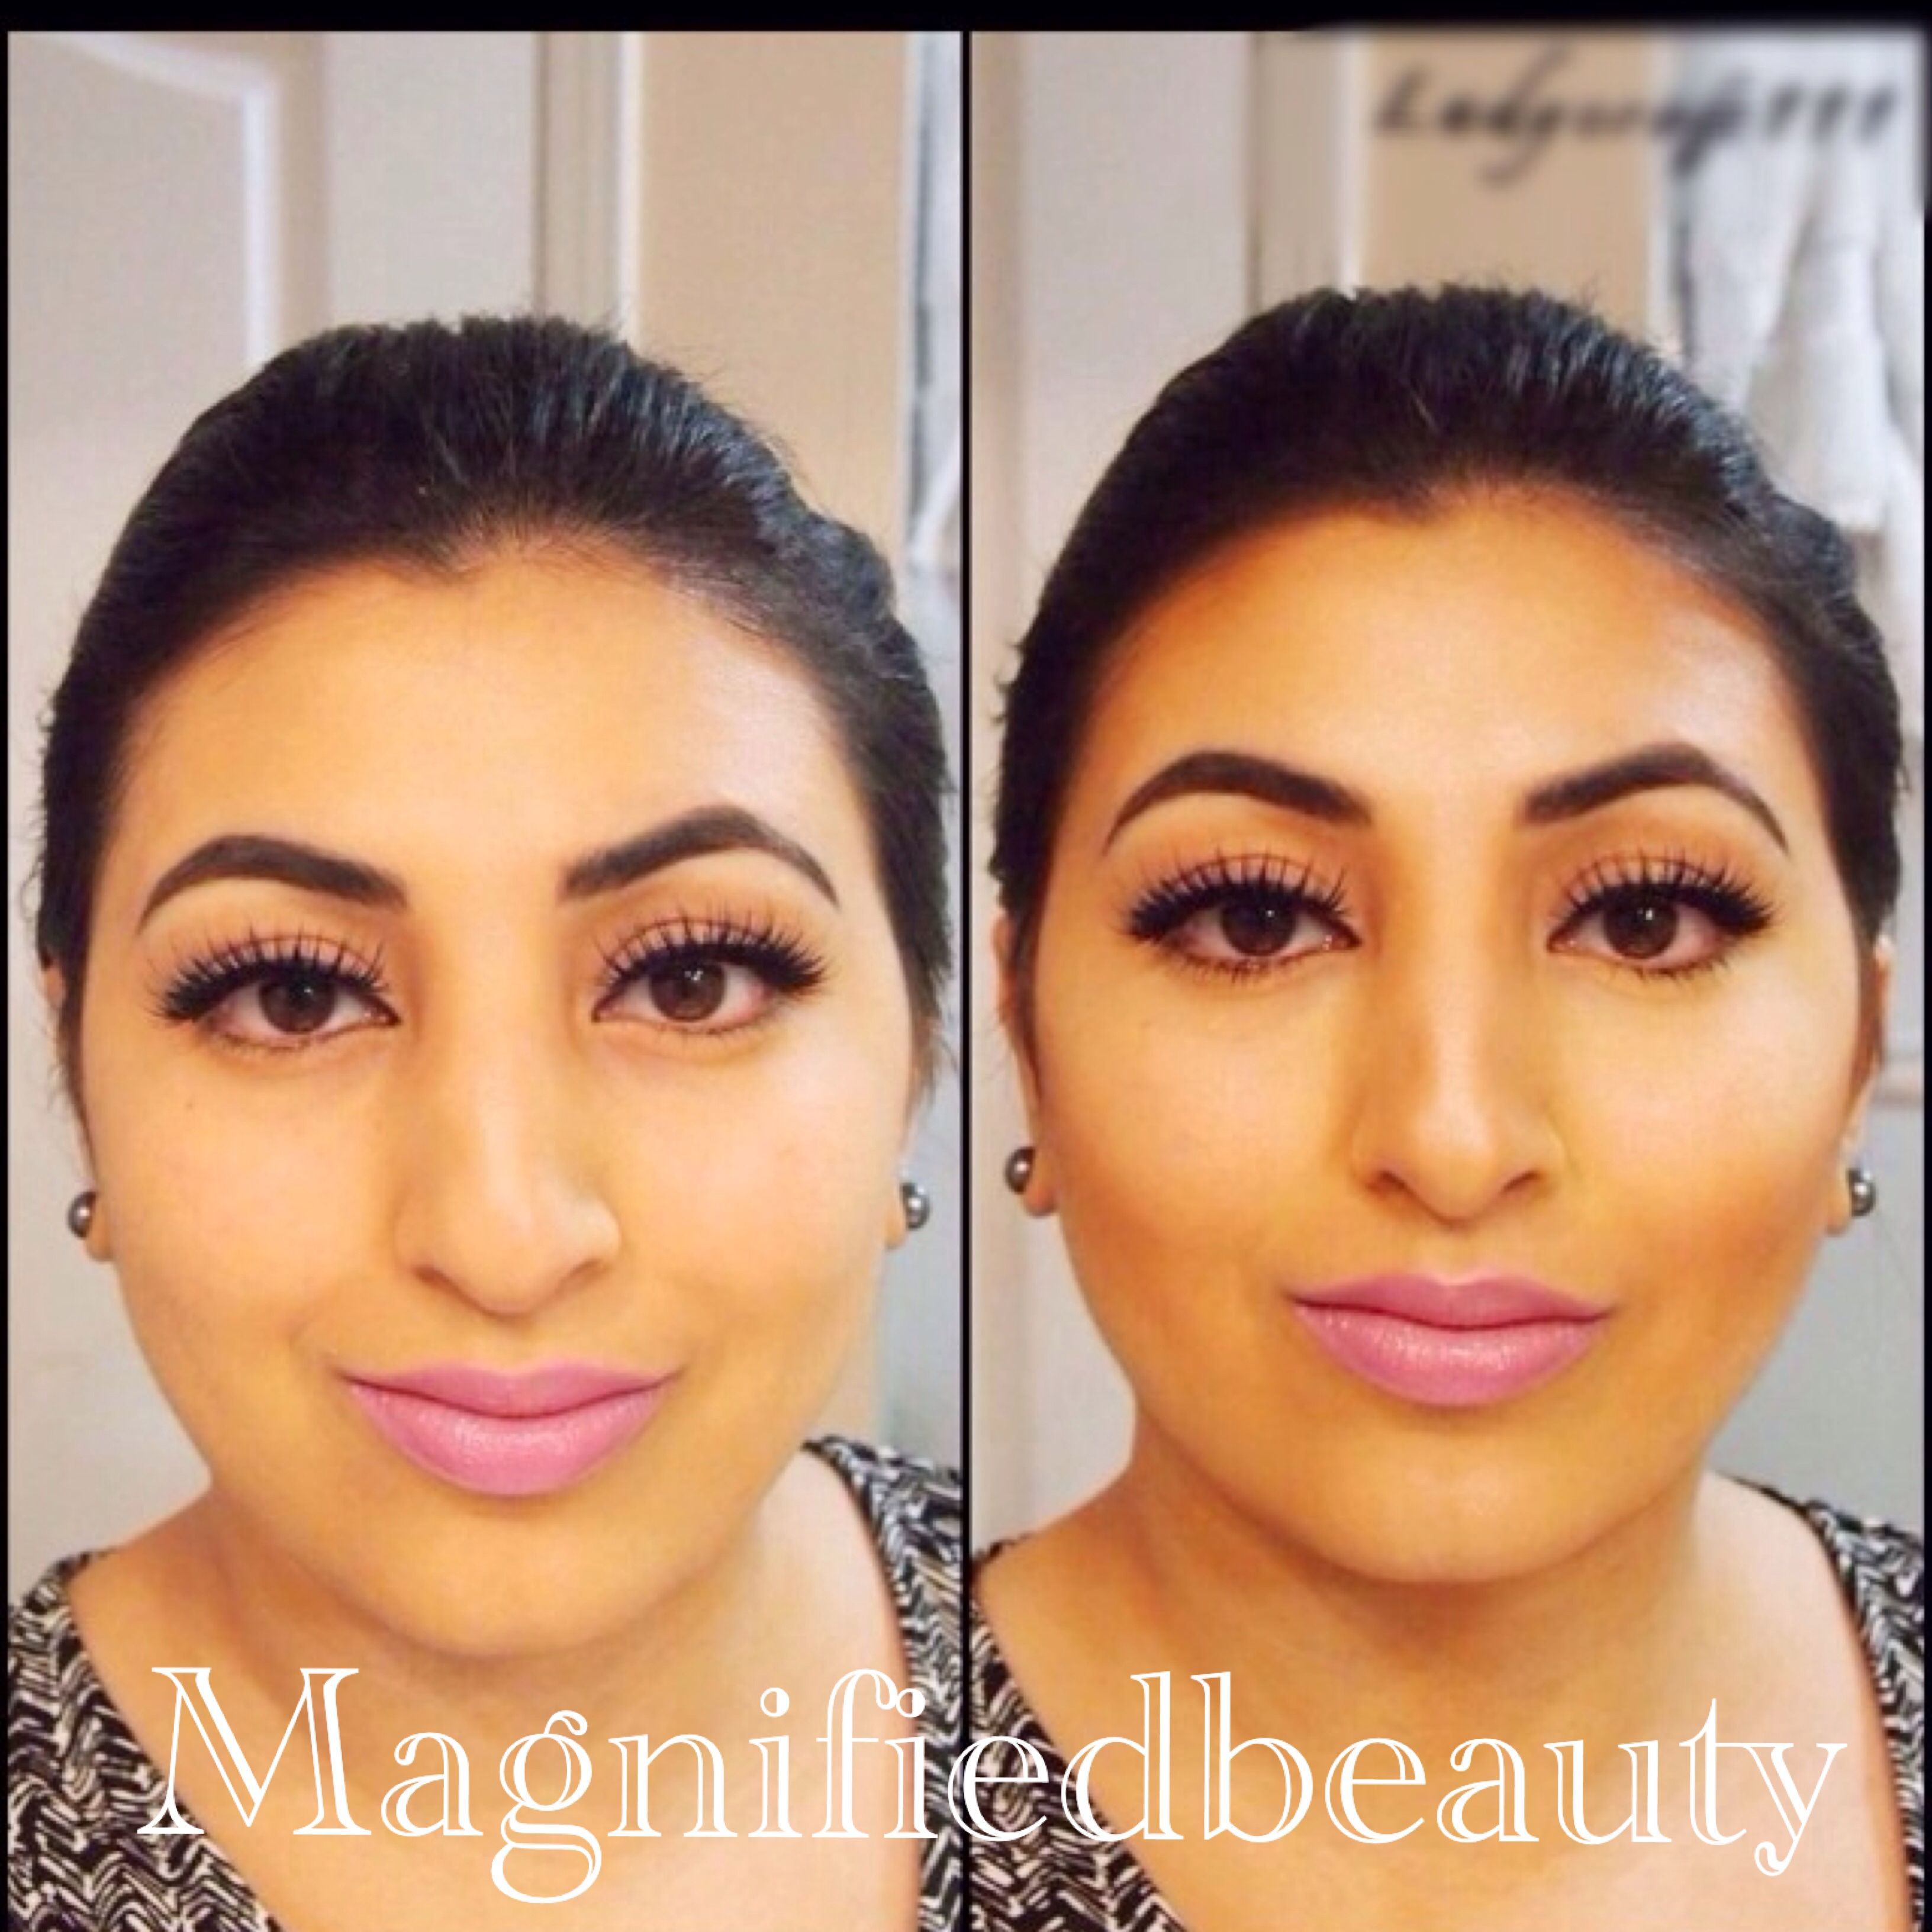 Anastasia contour kit-transformation by @magnifiedbeauty on Instagram